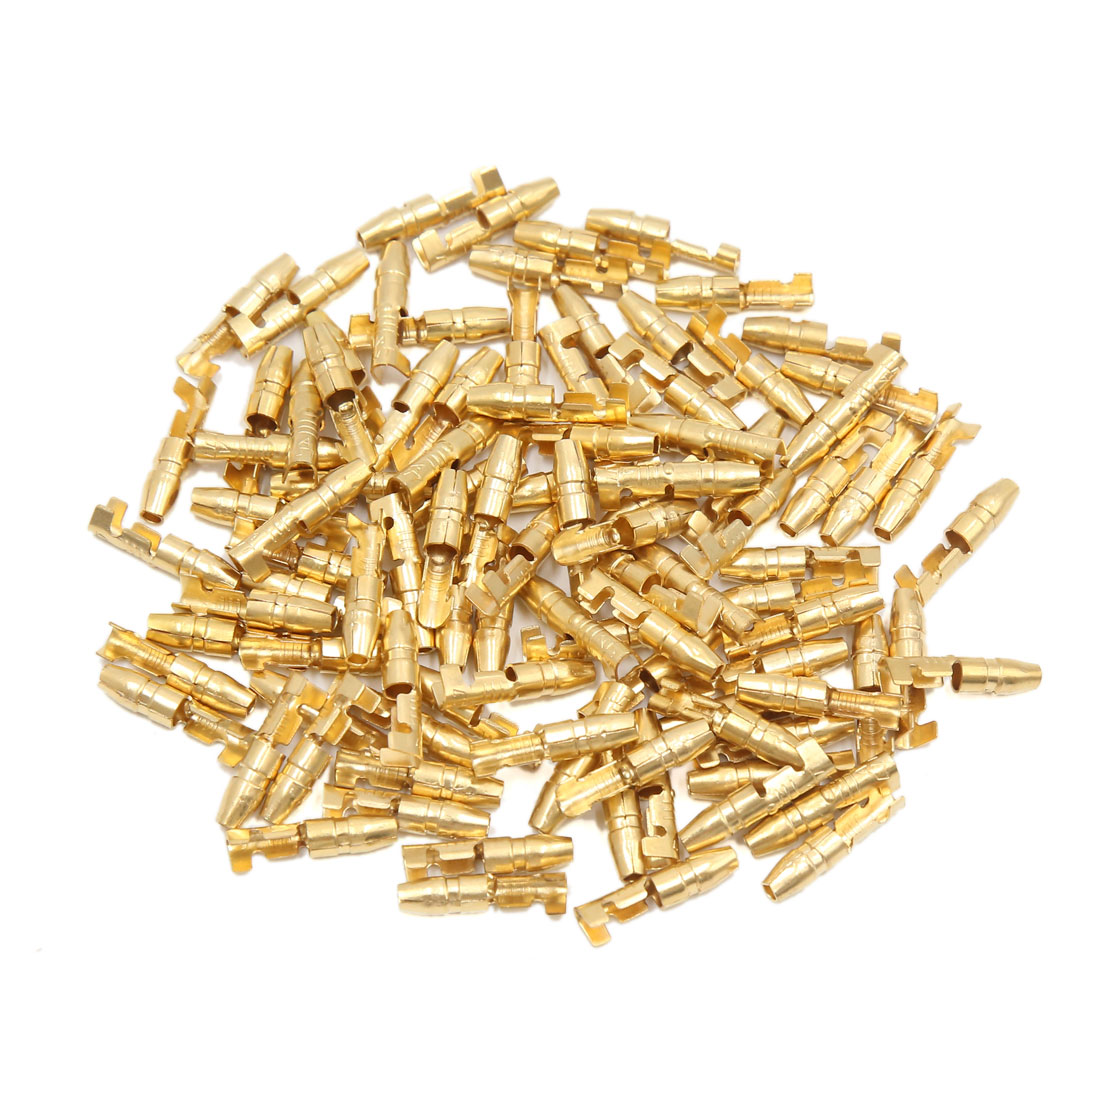 100pcs Gold Tone 3mm Hole Diameter Female Spade Terminals Connectors for Car